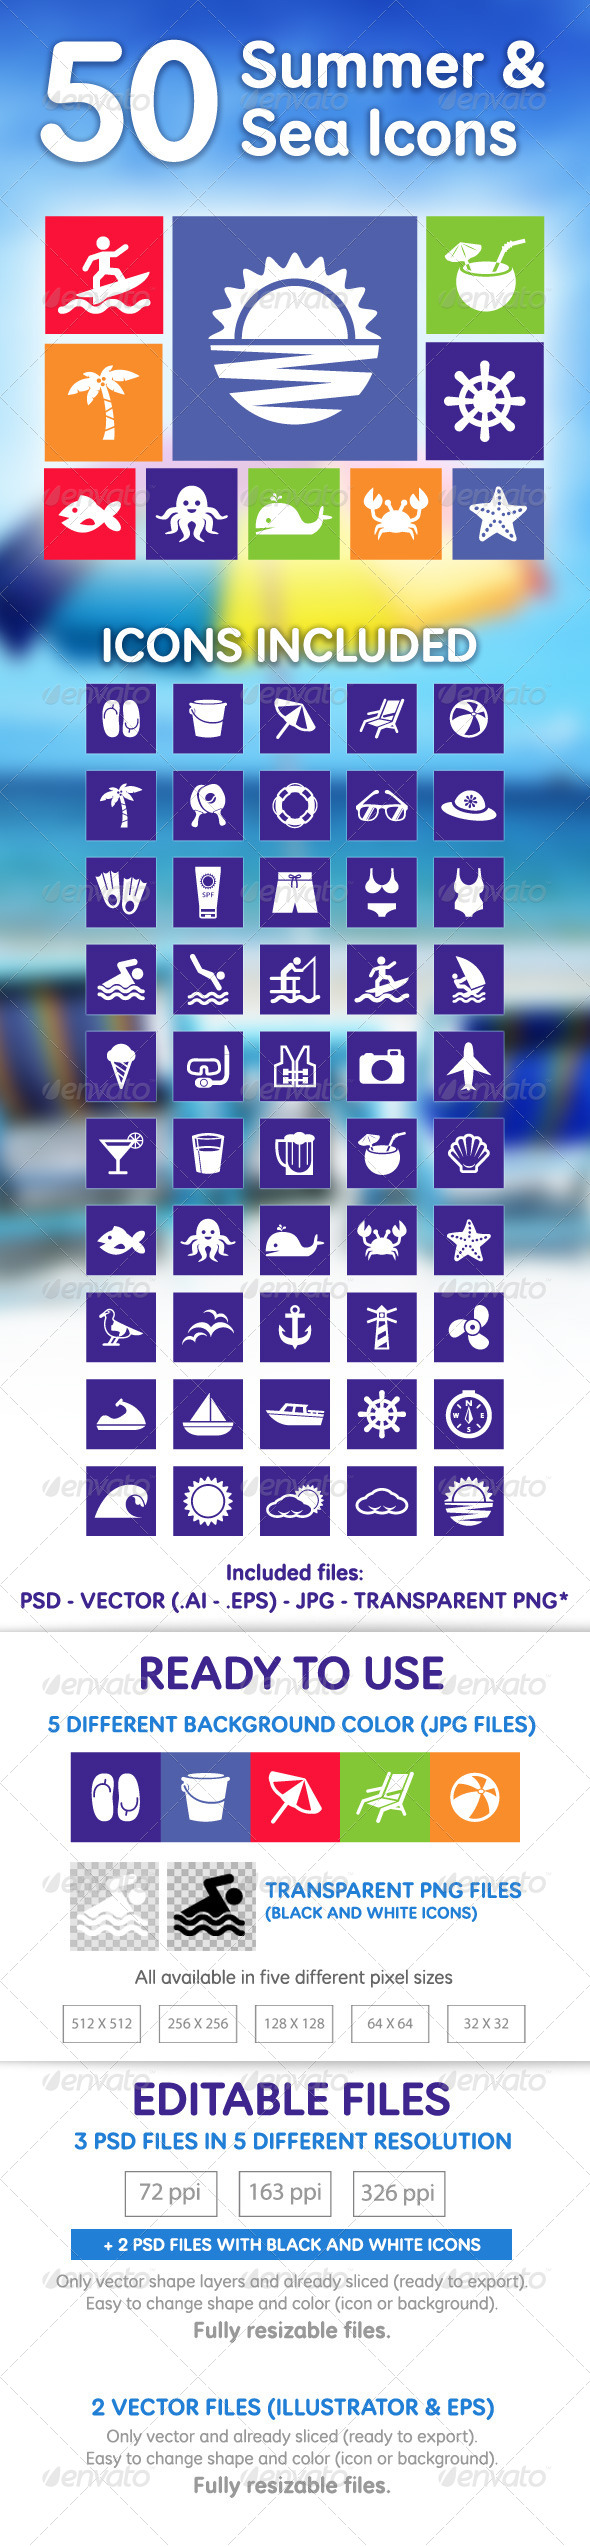 GraphicRiver 50 Summer & Sea Icons 5159753